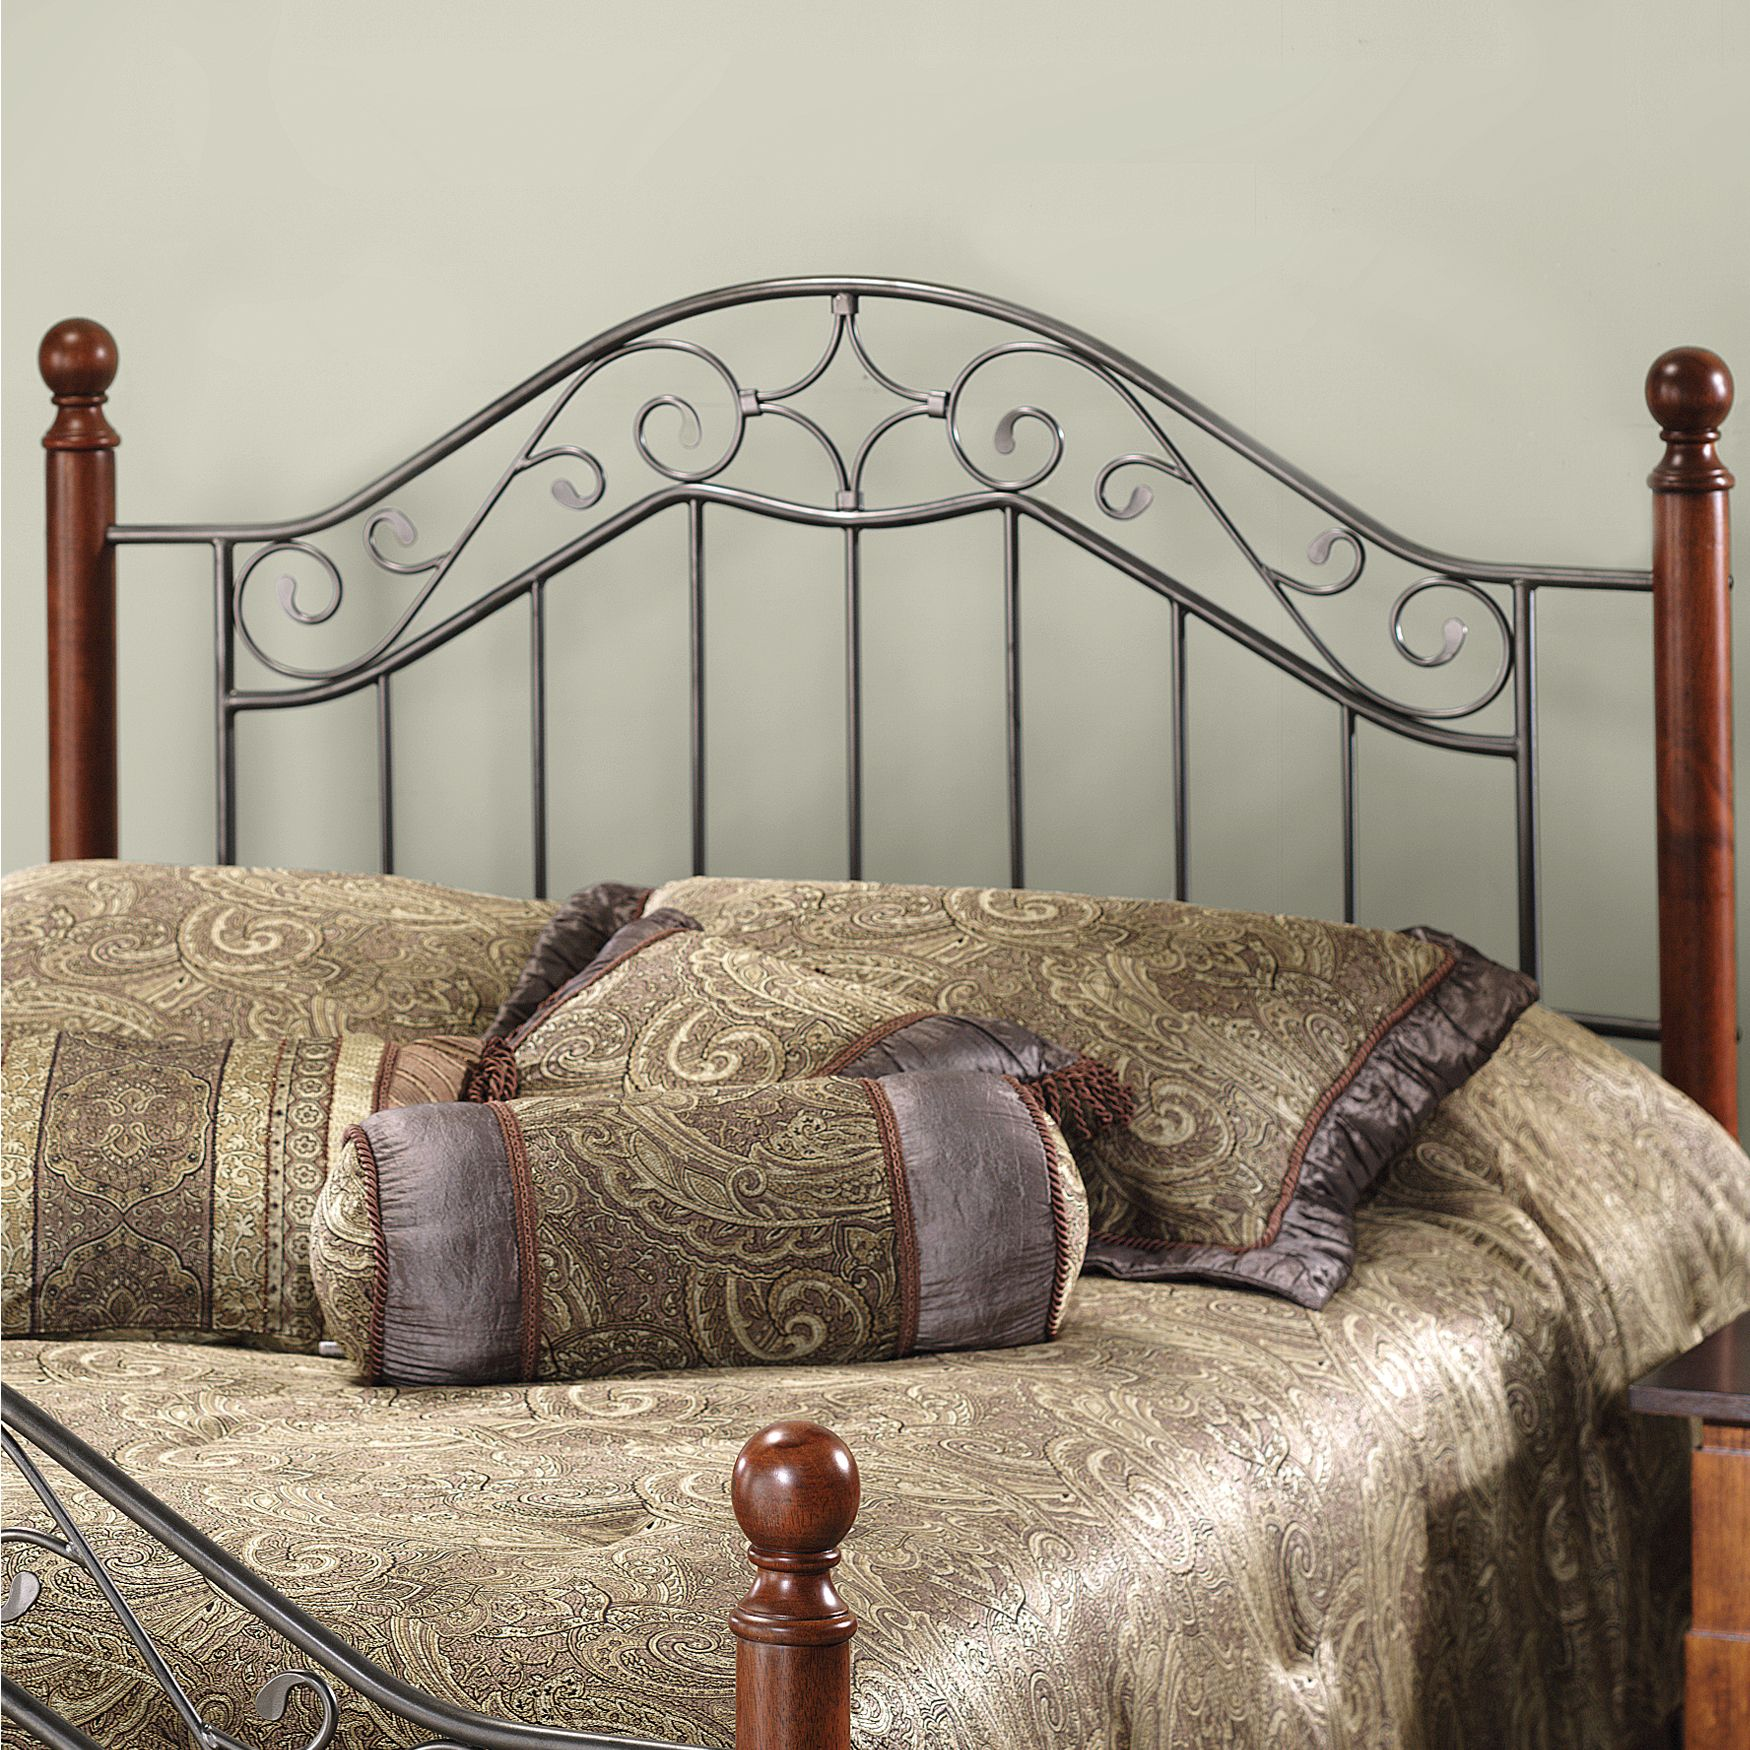 Full/Queen Headboard with Headboard Frame 71½ 'L x 62'W x 53½'H, SILVER